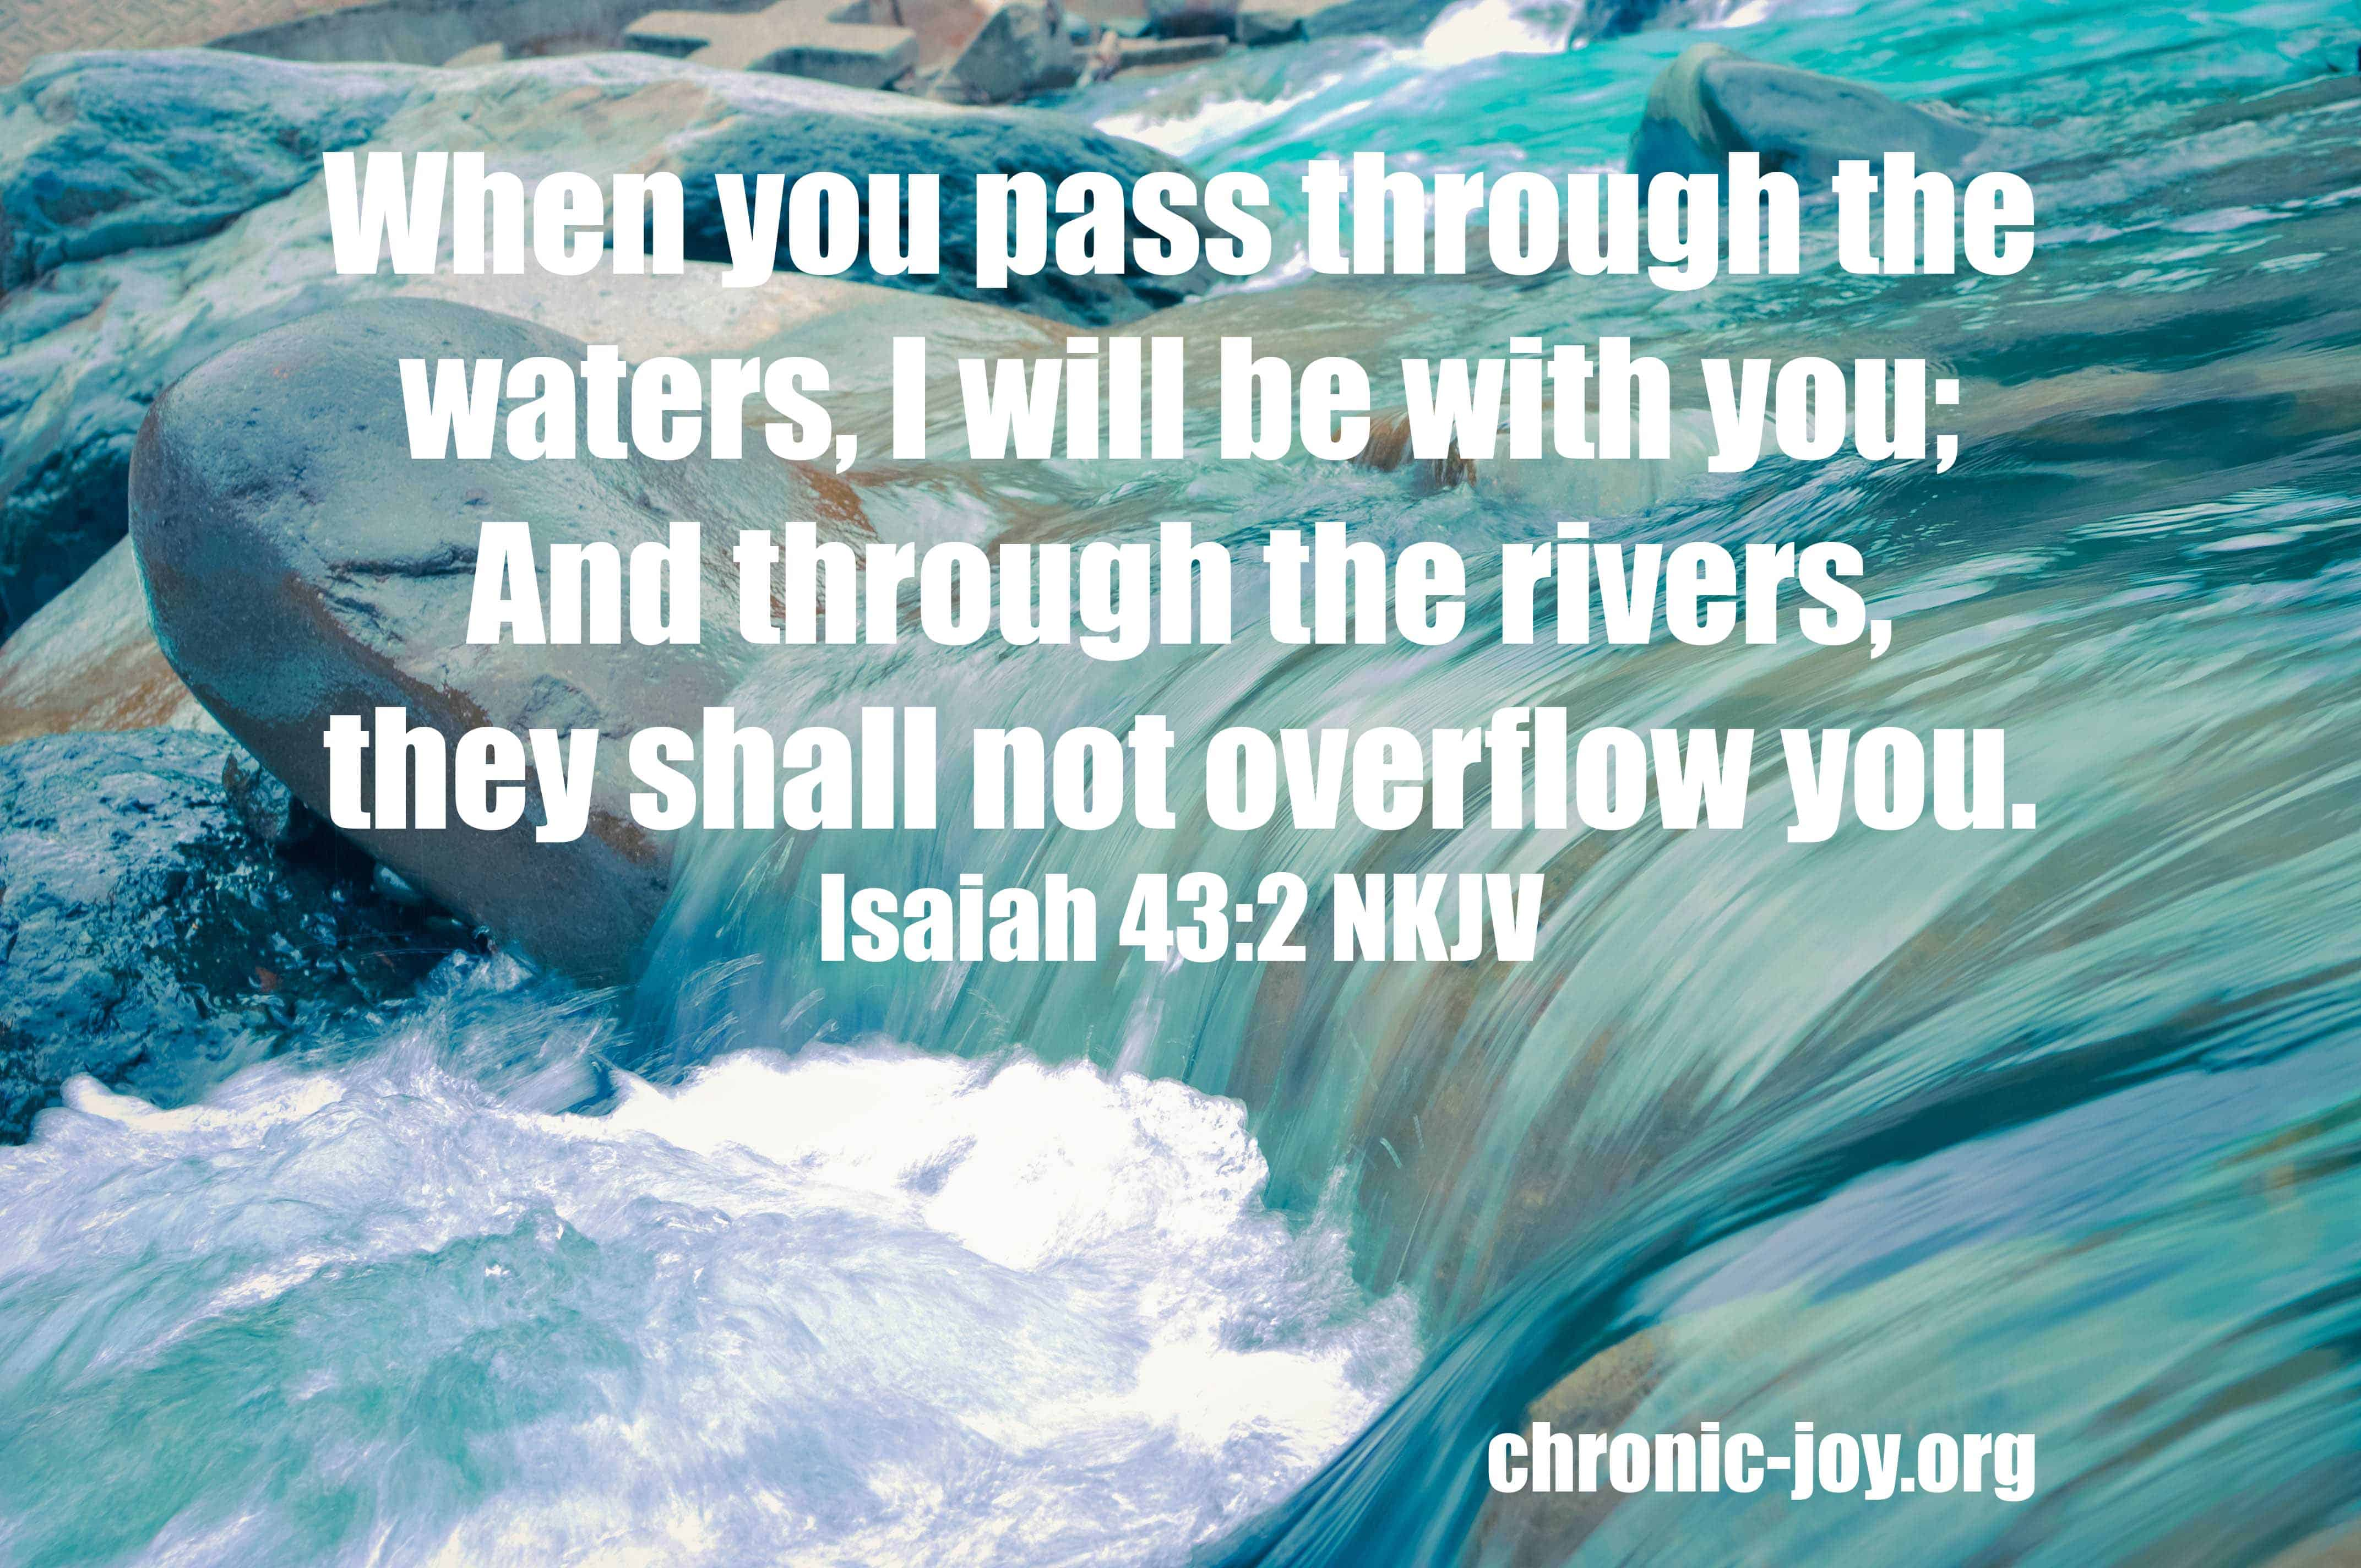 When you pass through the waters, I will be with you; And through the rivers, they shall not overflow you. Isaiah 43:2